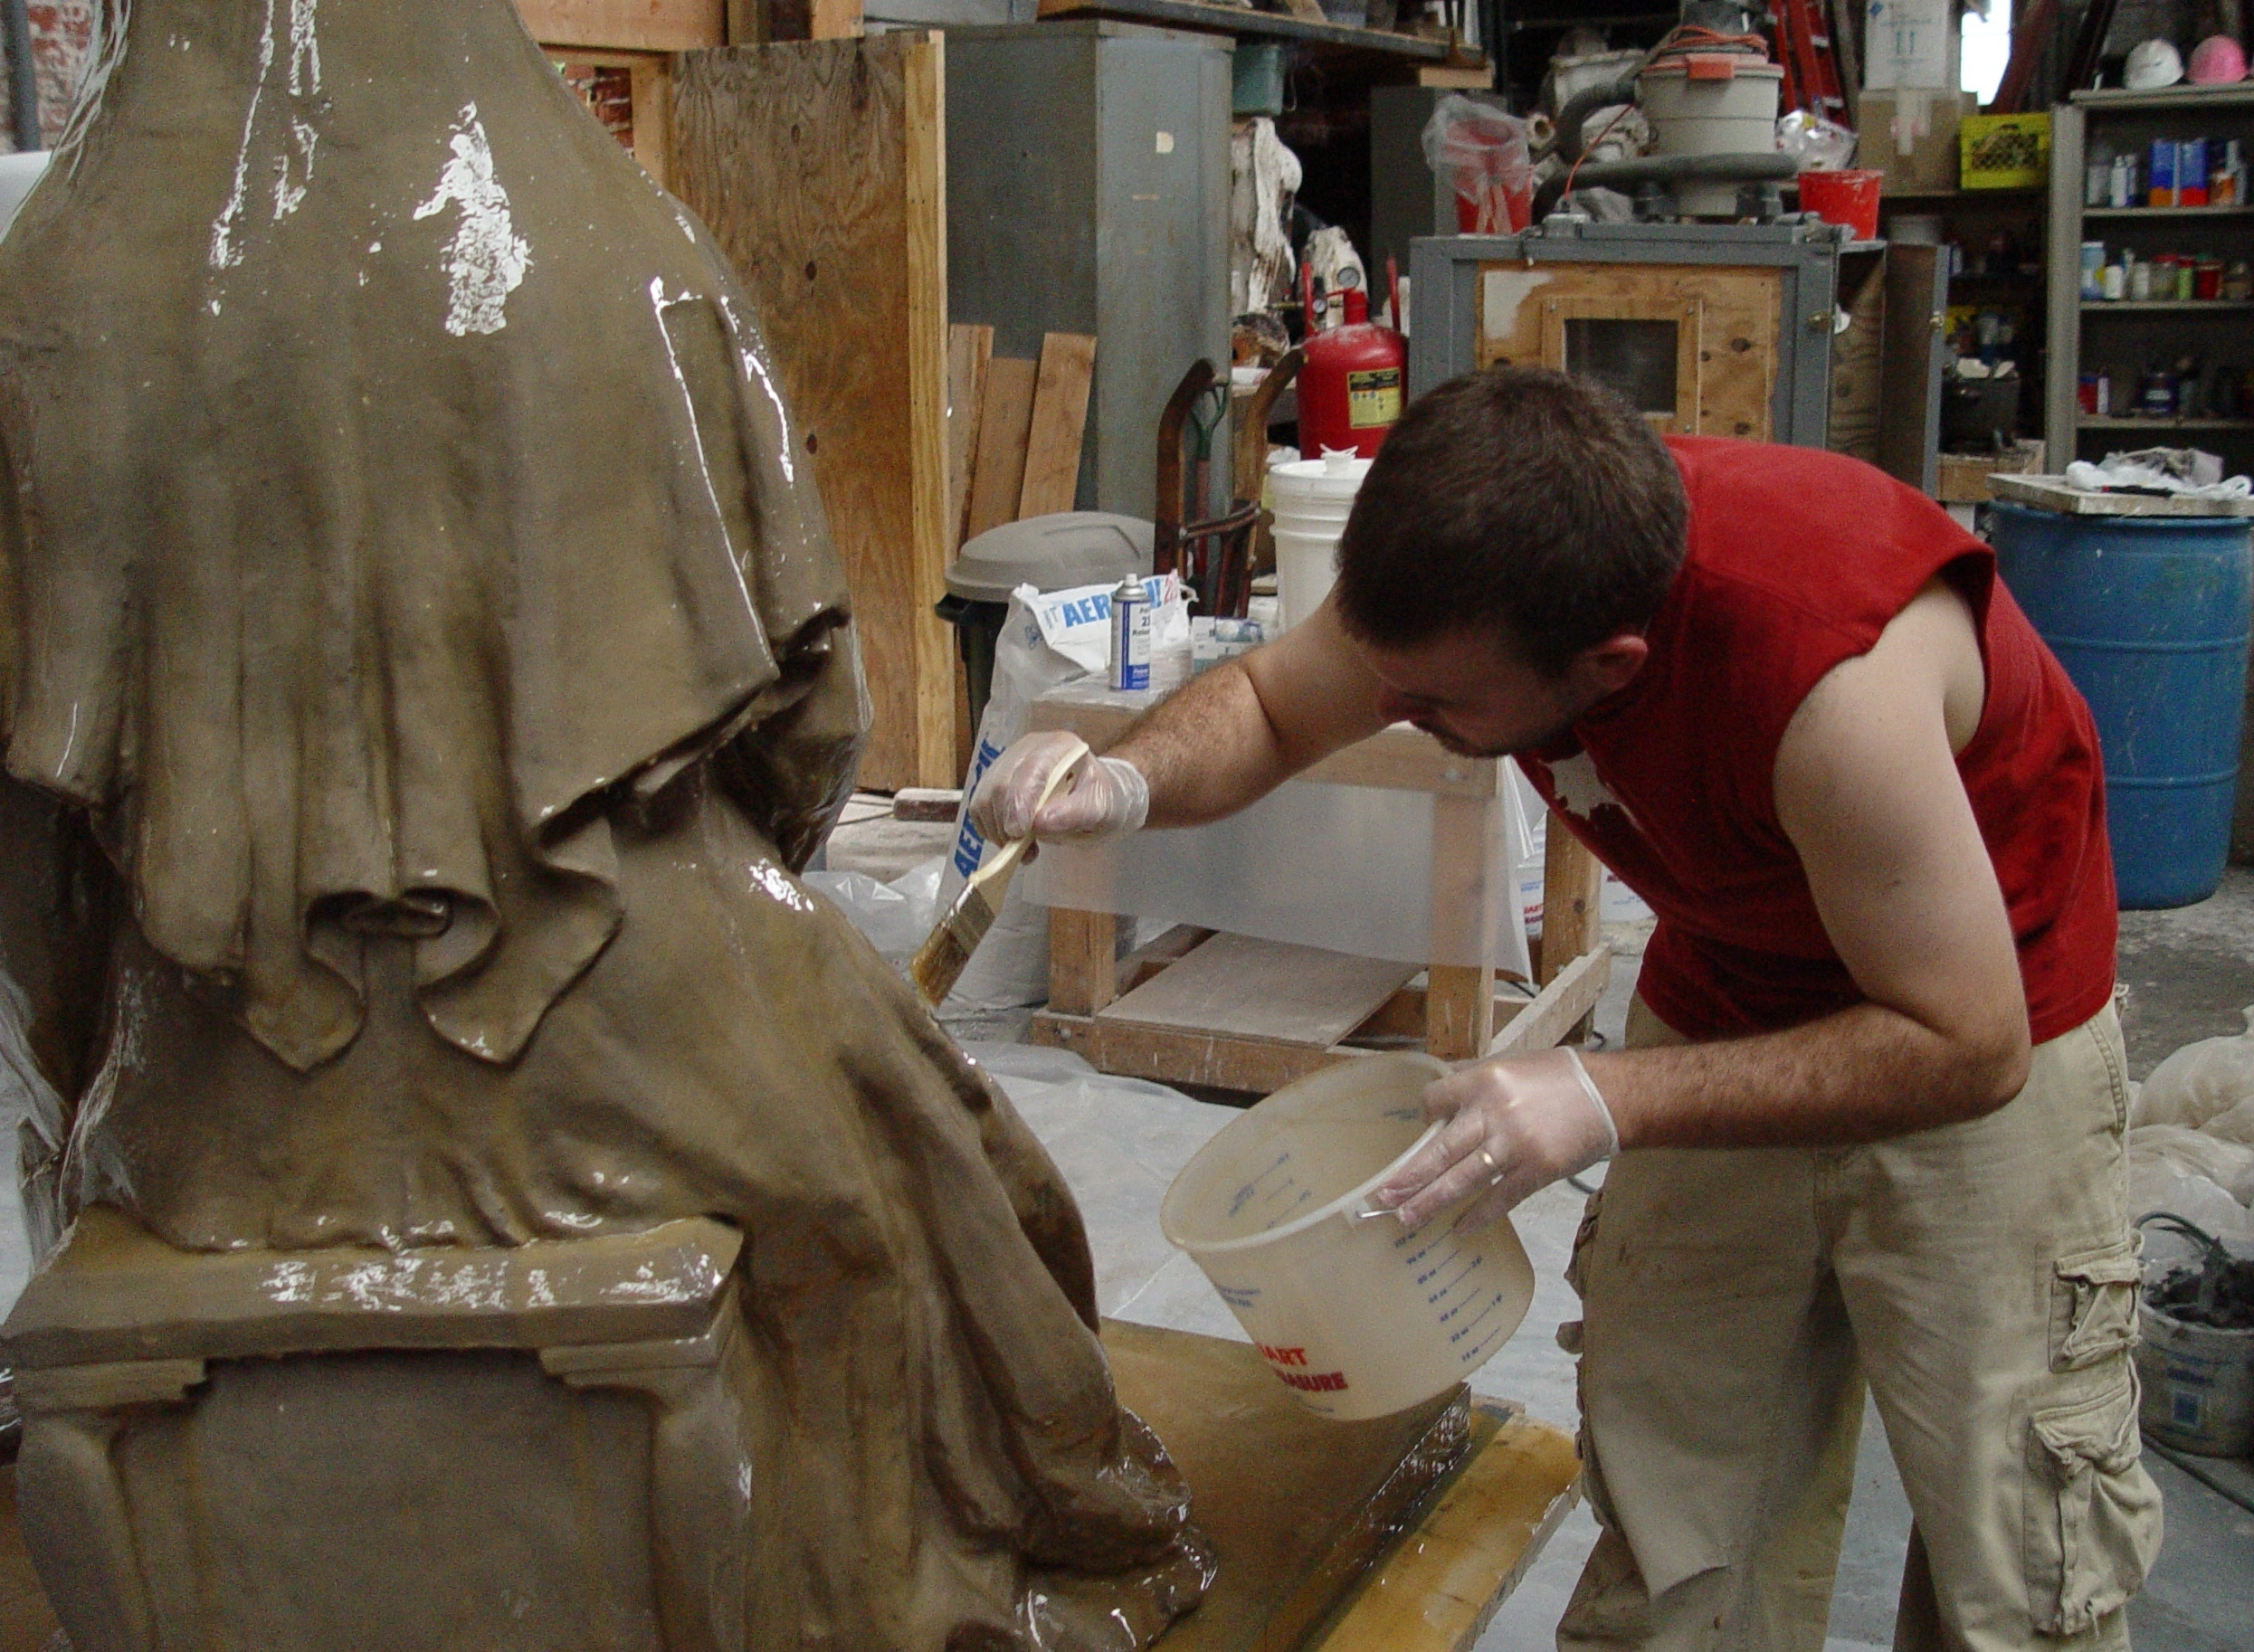 Zachary Kainz is applying the first coat of the rubber mold